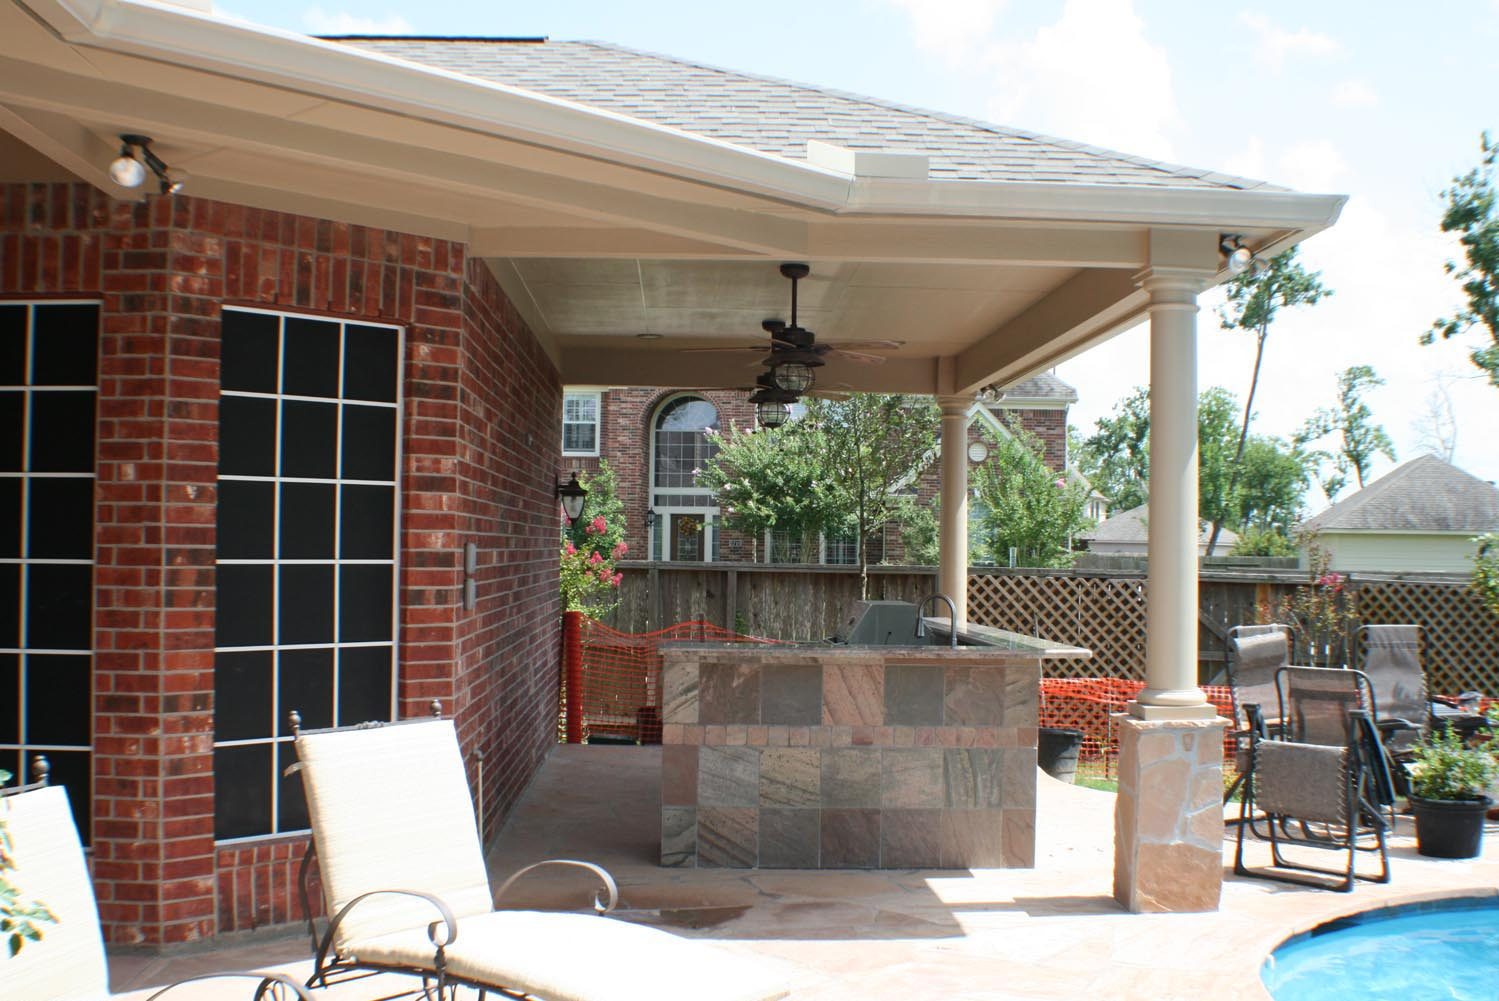 Patio Cover + Outdoor Kitchen - HHI Patio Covers on Backyard Patio Cover  id=63300